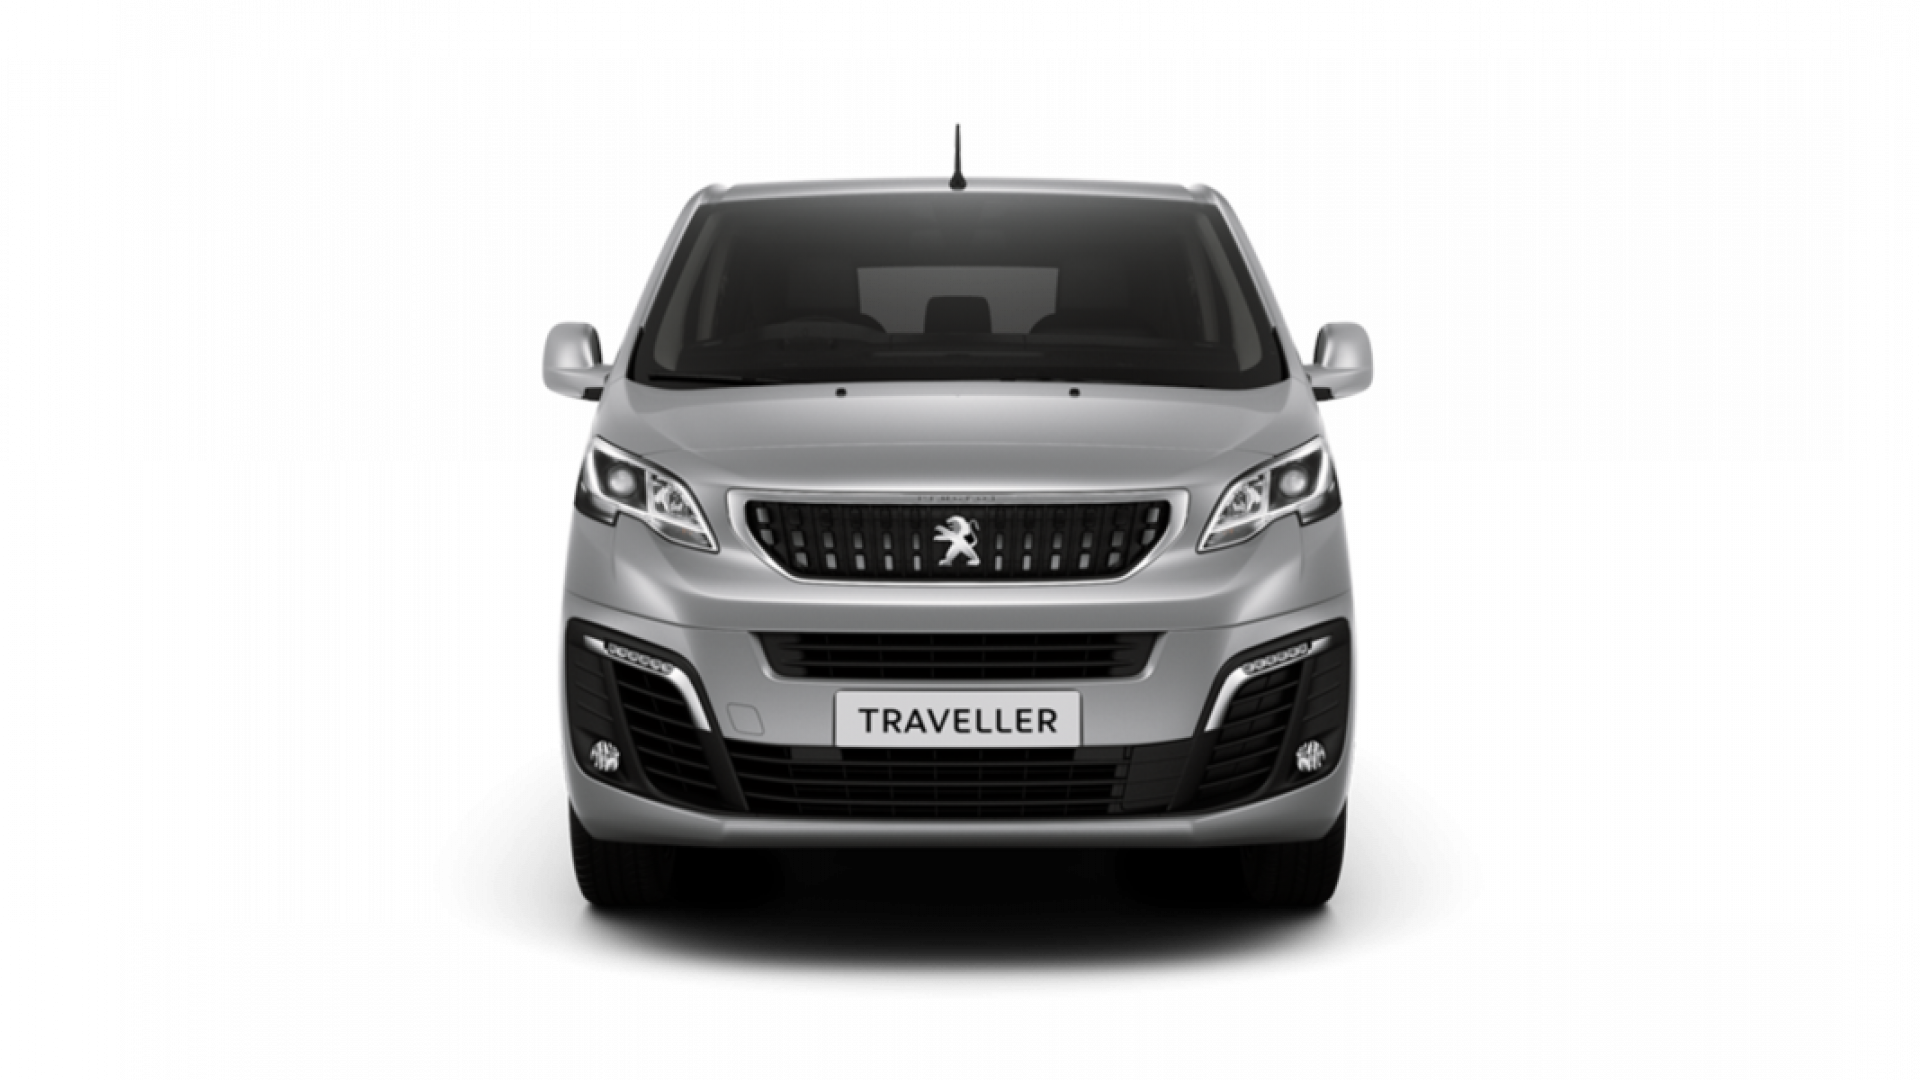 new peugeot traveller sw 2 0 bluehdi 150 allure standard 8 seat 5dr robins and day. Black Bedroom Furniture Sets. Home Design Ideas